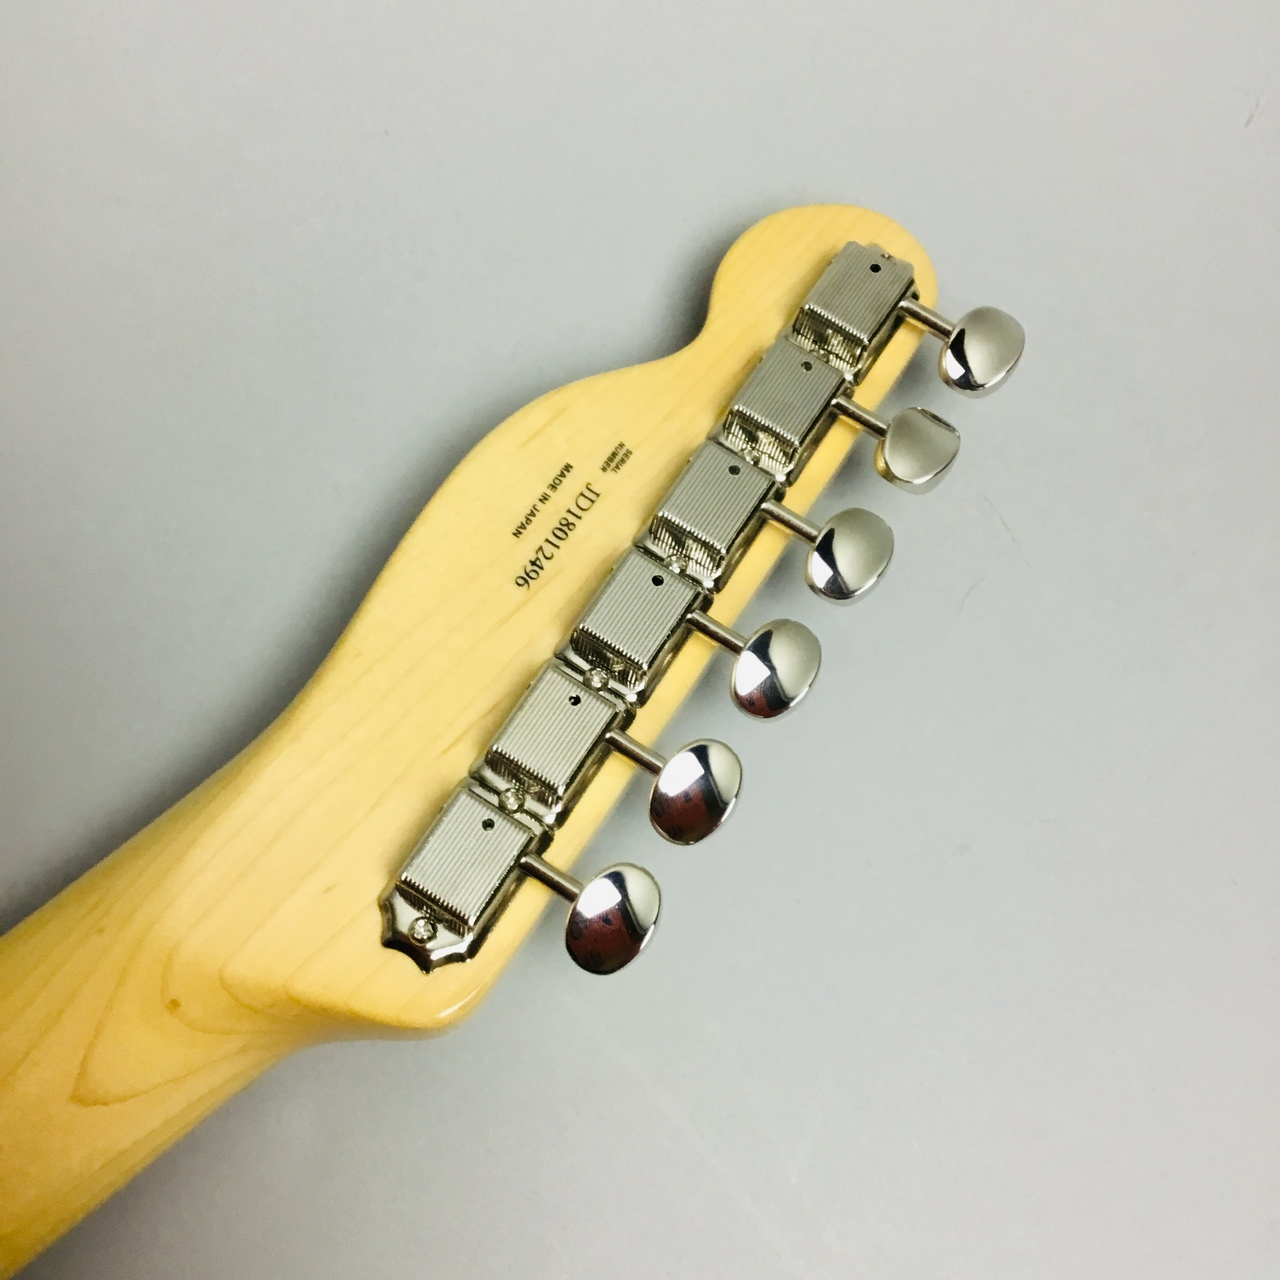 MADE IN JAPAN TRADITIONAL 69 TELECASTER THINLINEのヘッド裏-アップ画像